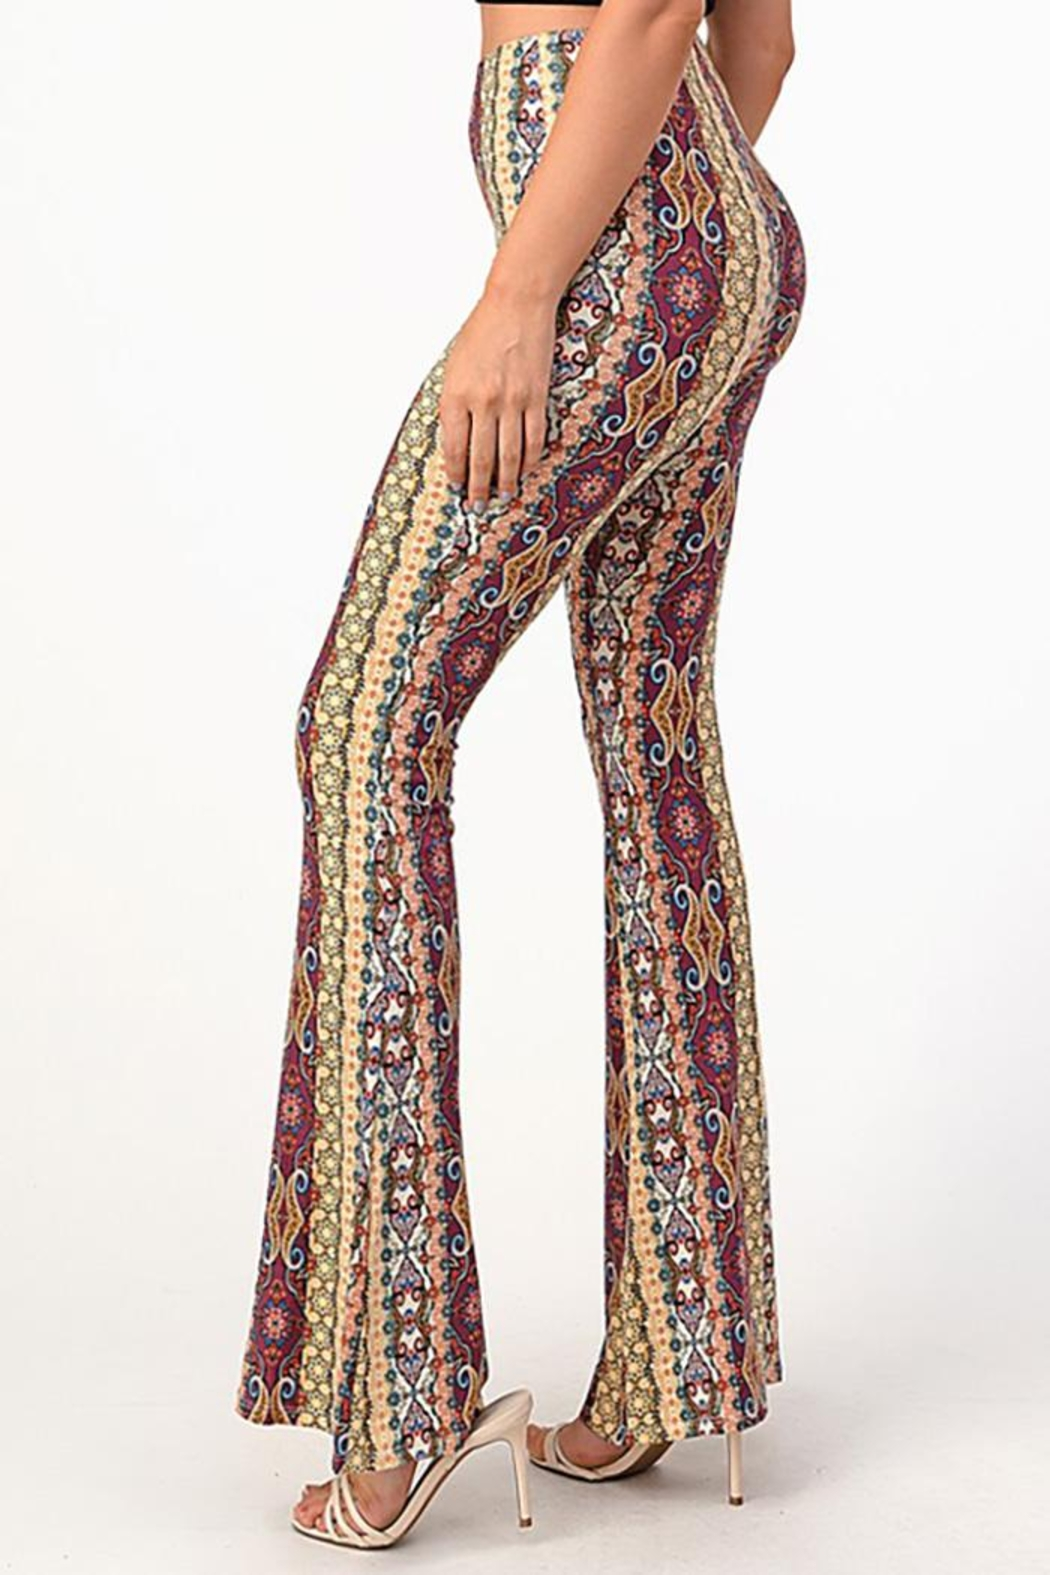 Bear Dance Printed Bell Bottom Palazzo Pants - Front Full Image